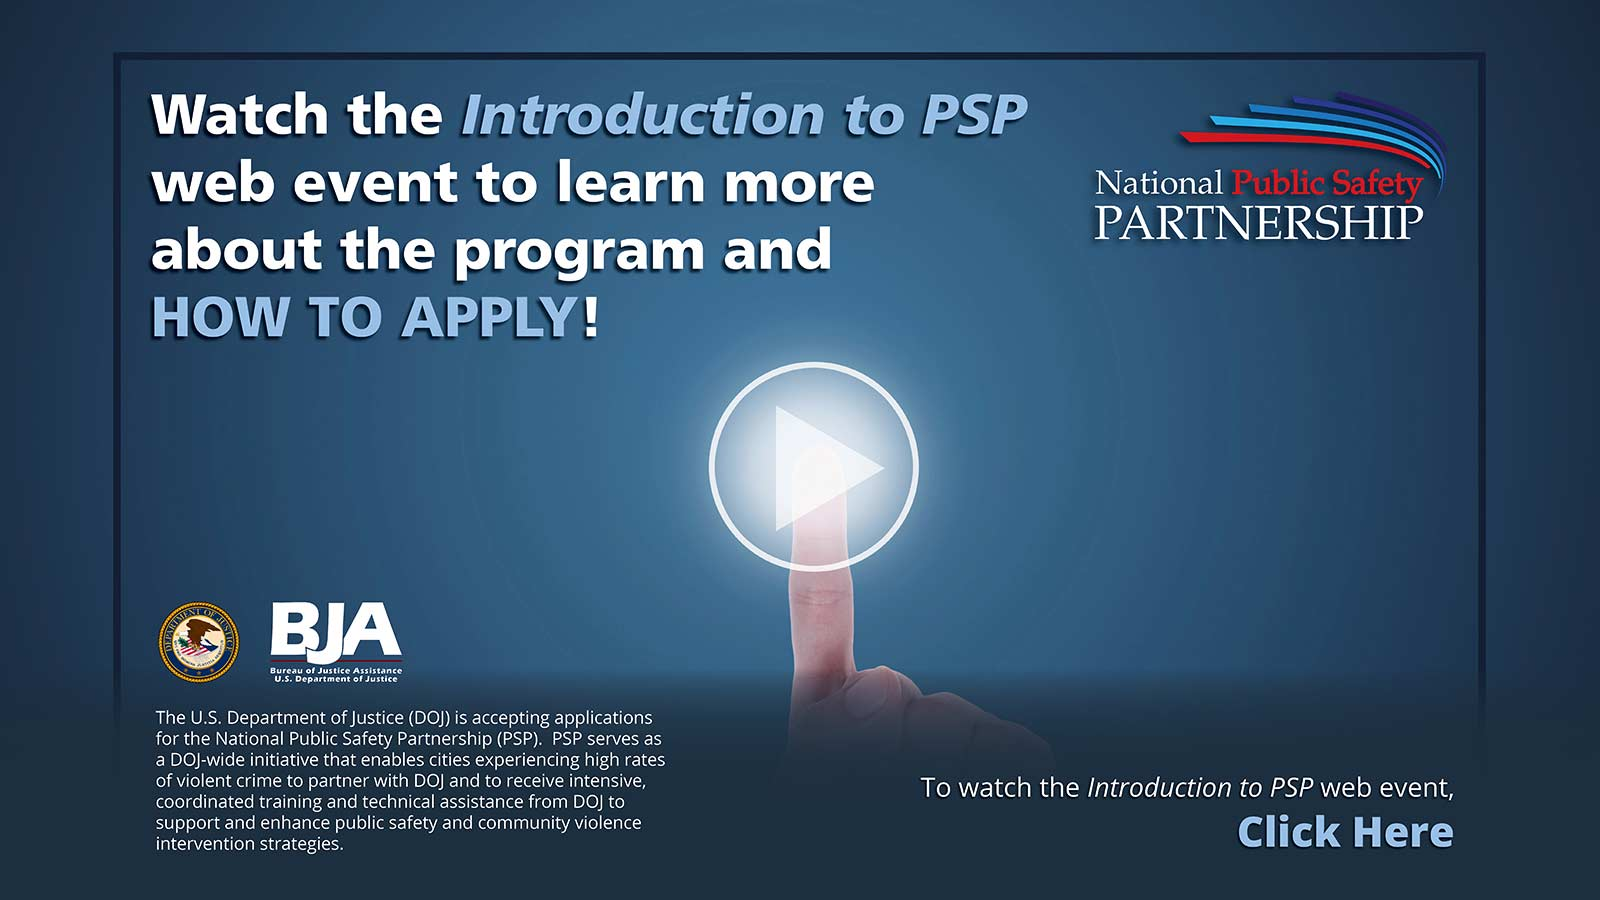 Watch the Intro to PSP web event to learn more about the program and how to apply!